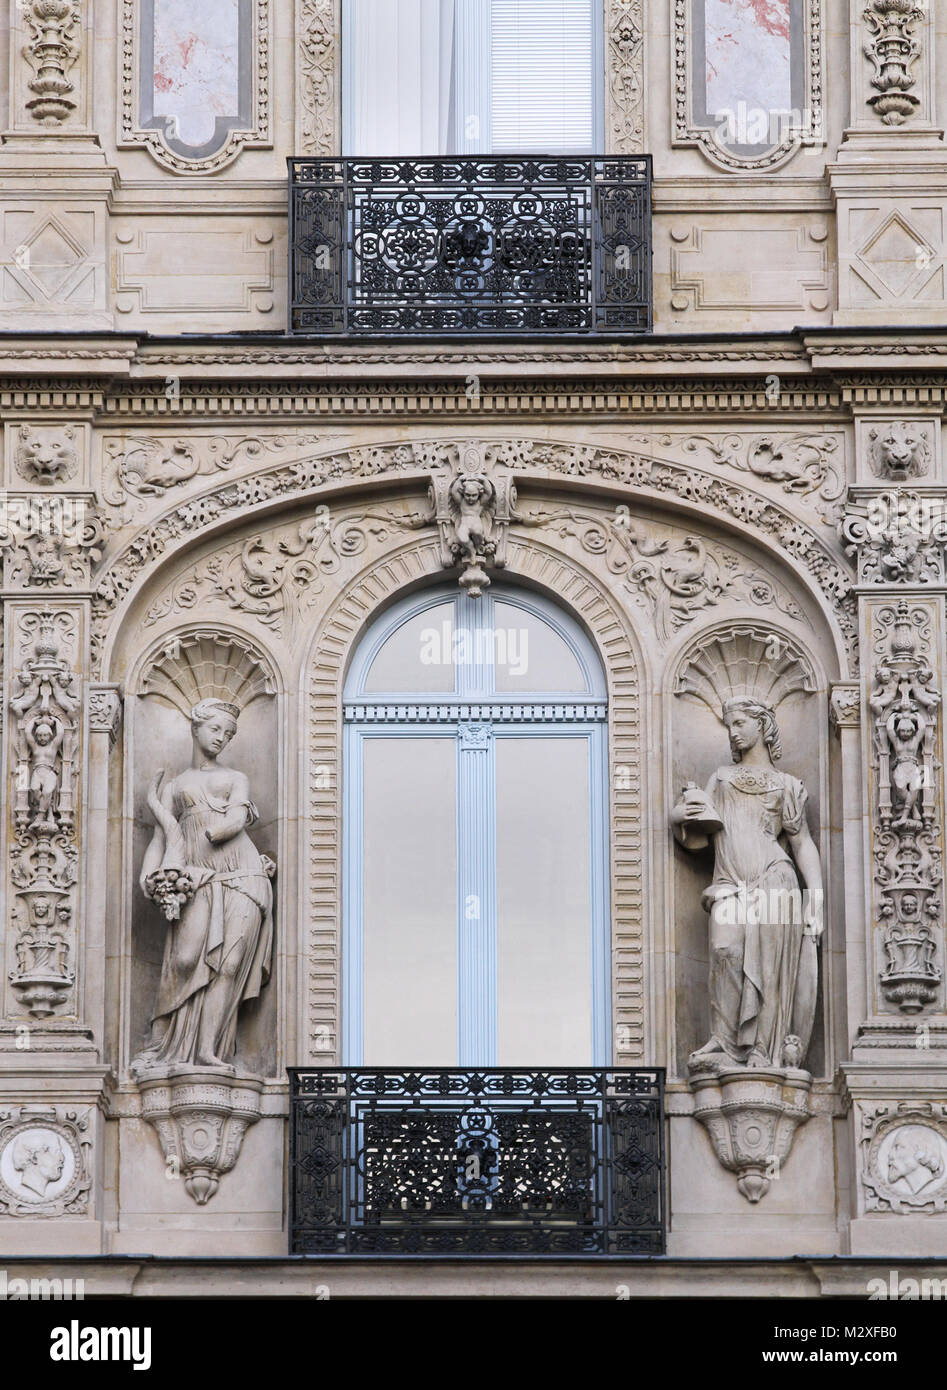 Old Paris architecture building facade with stone statues - Stock Image